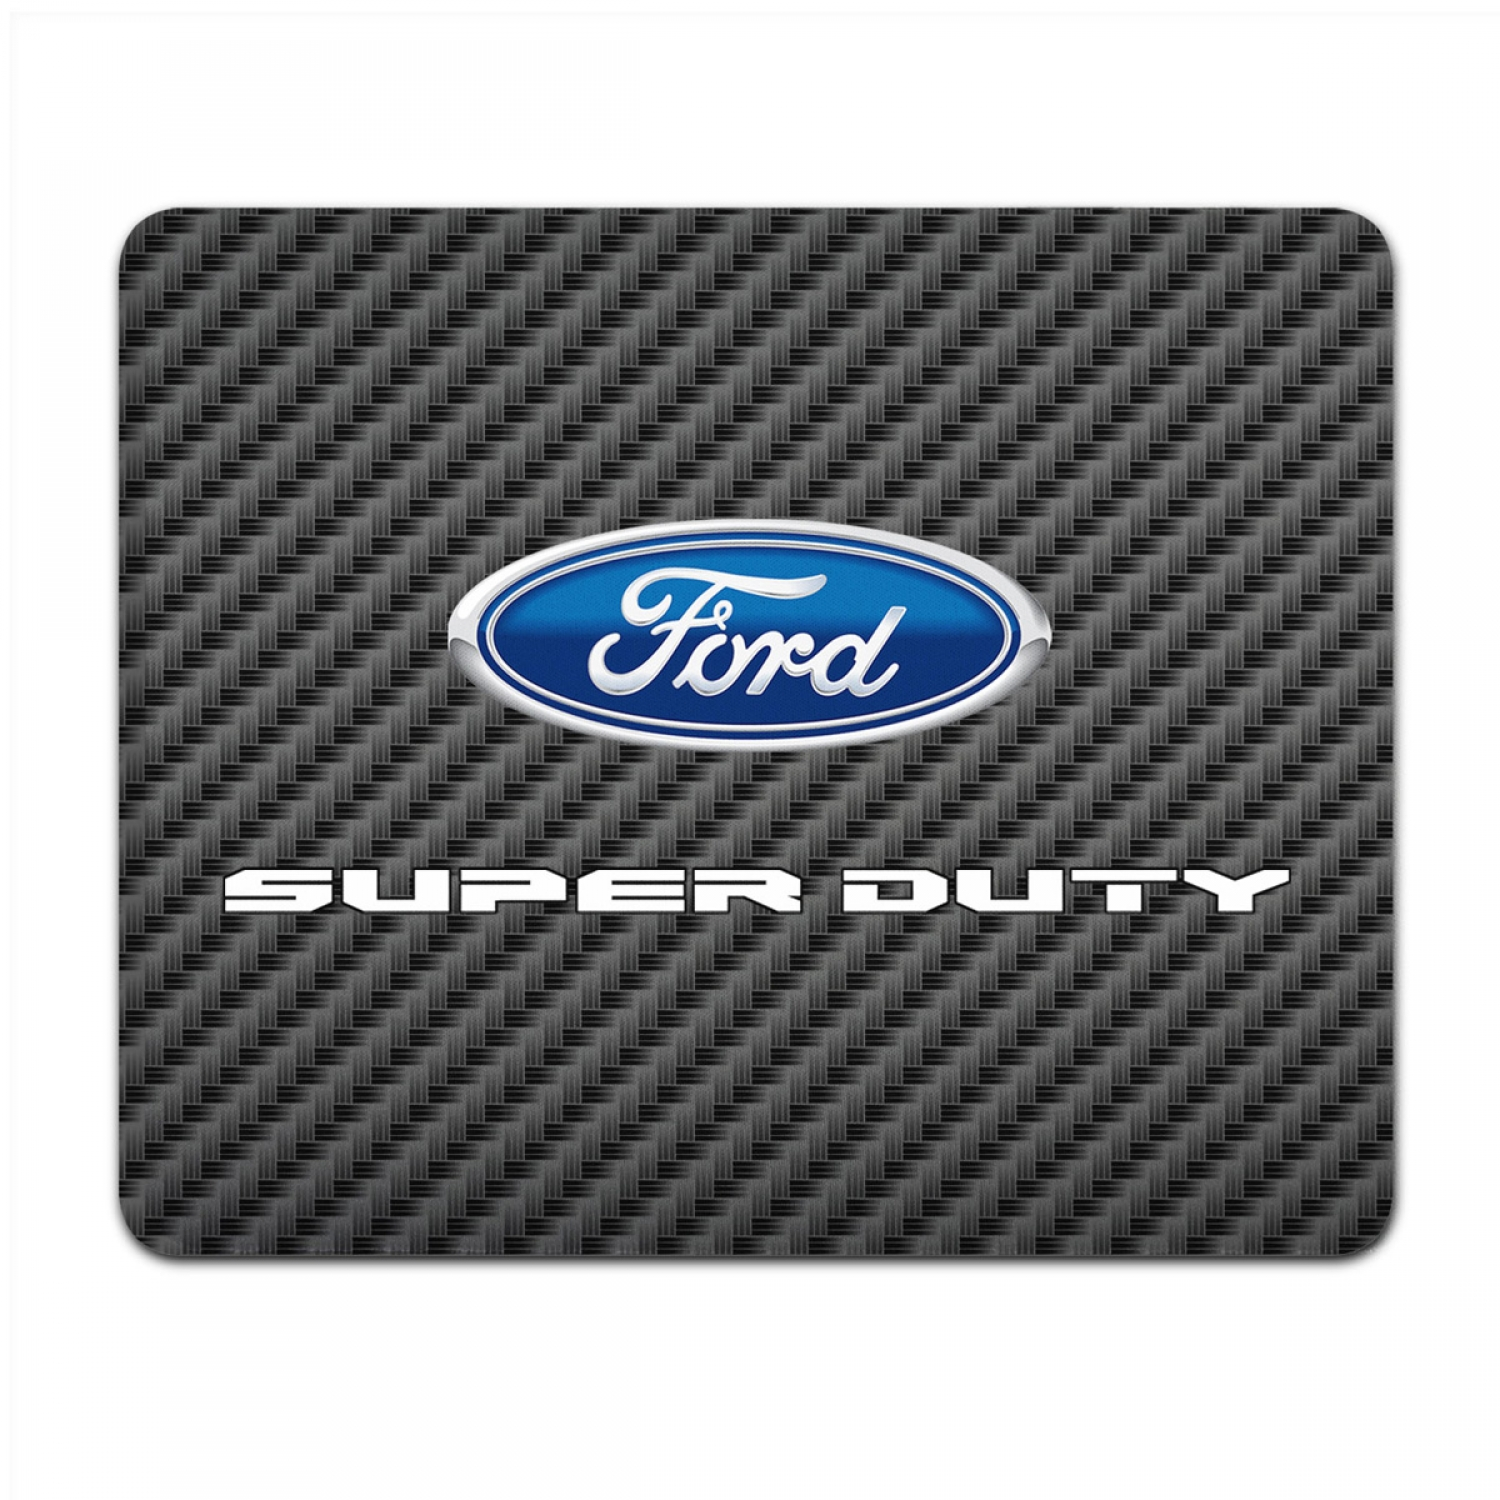 Ford Super-Duty 2016 to 2017 Black Carbon Fiber Texture Graphic PC Mouse Pad